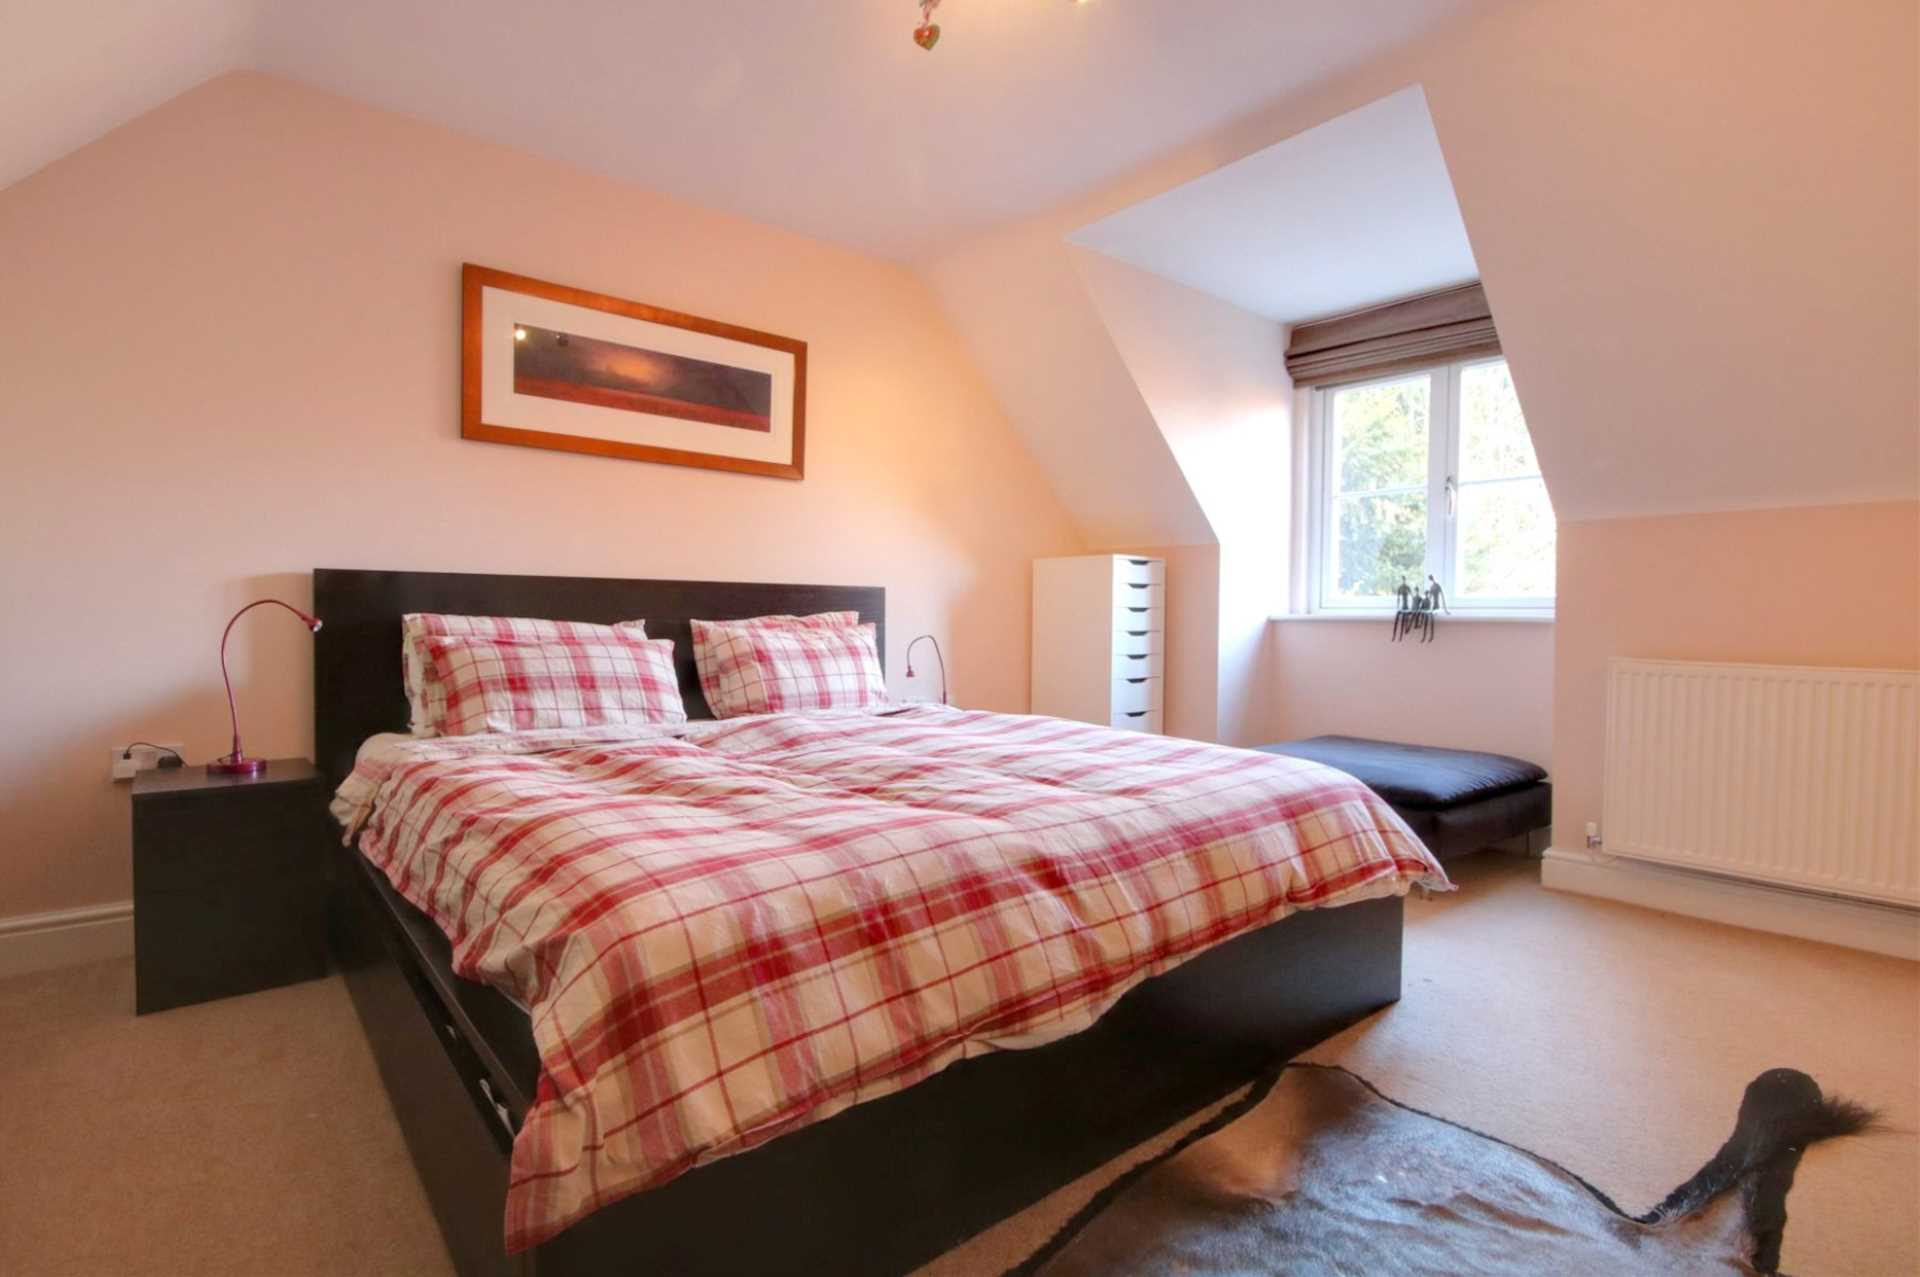 5 BED OFFERED FURNISHED & AVAILABLE June 2021, Image 6